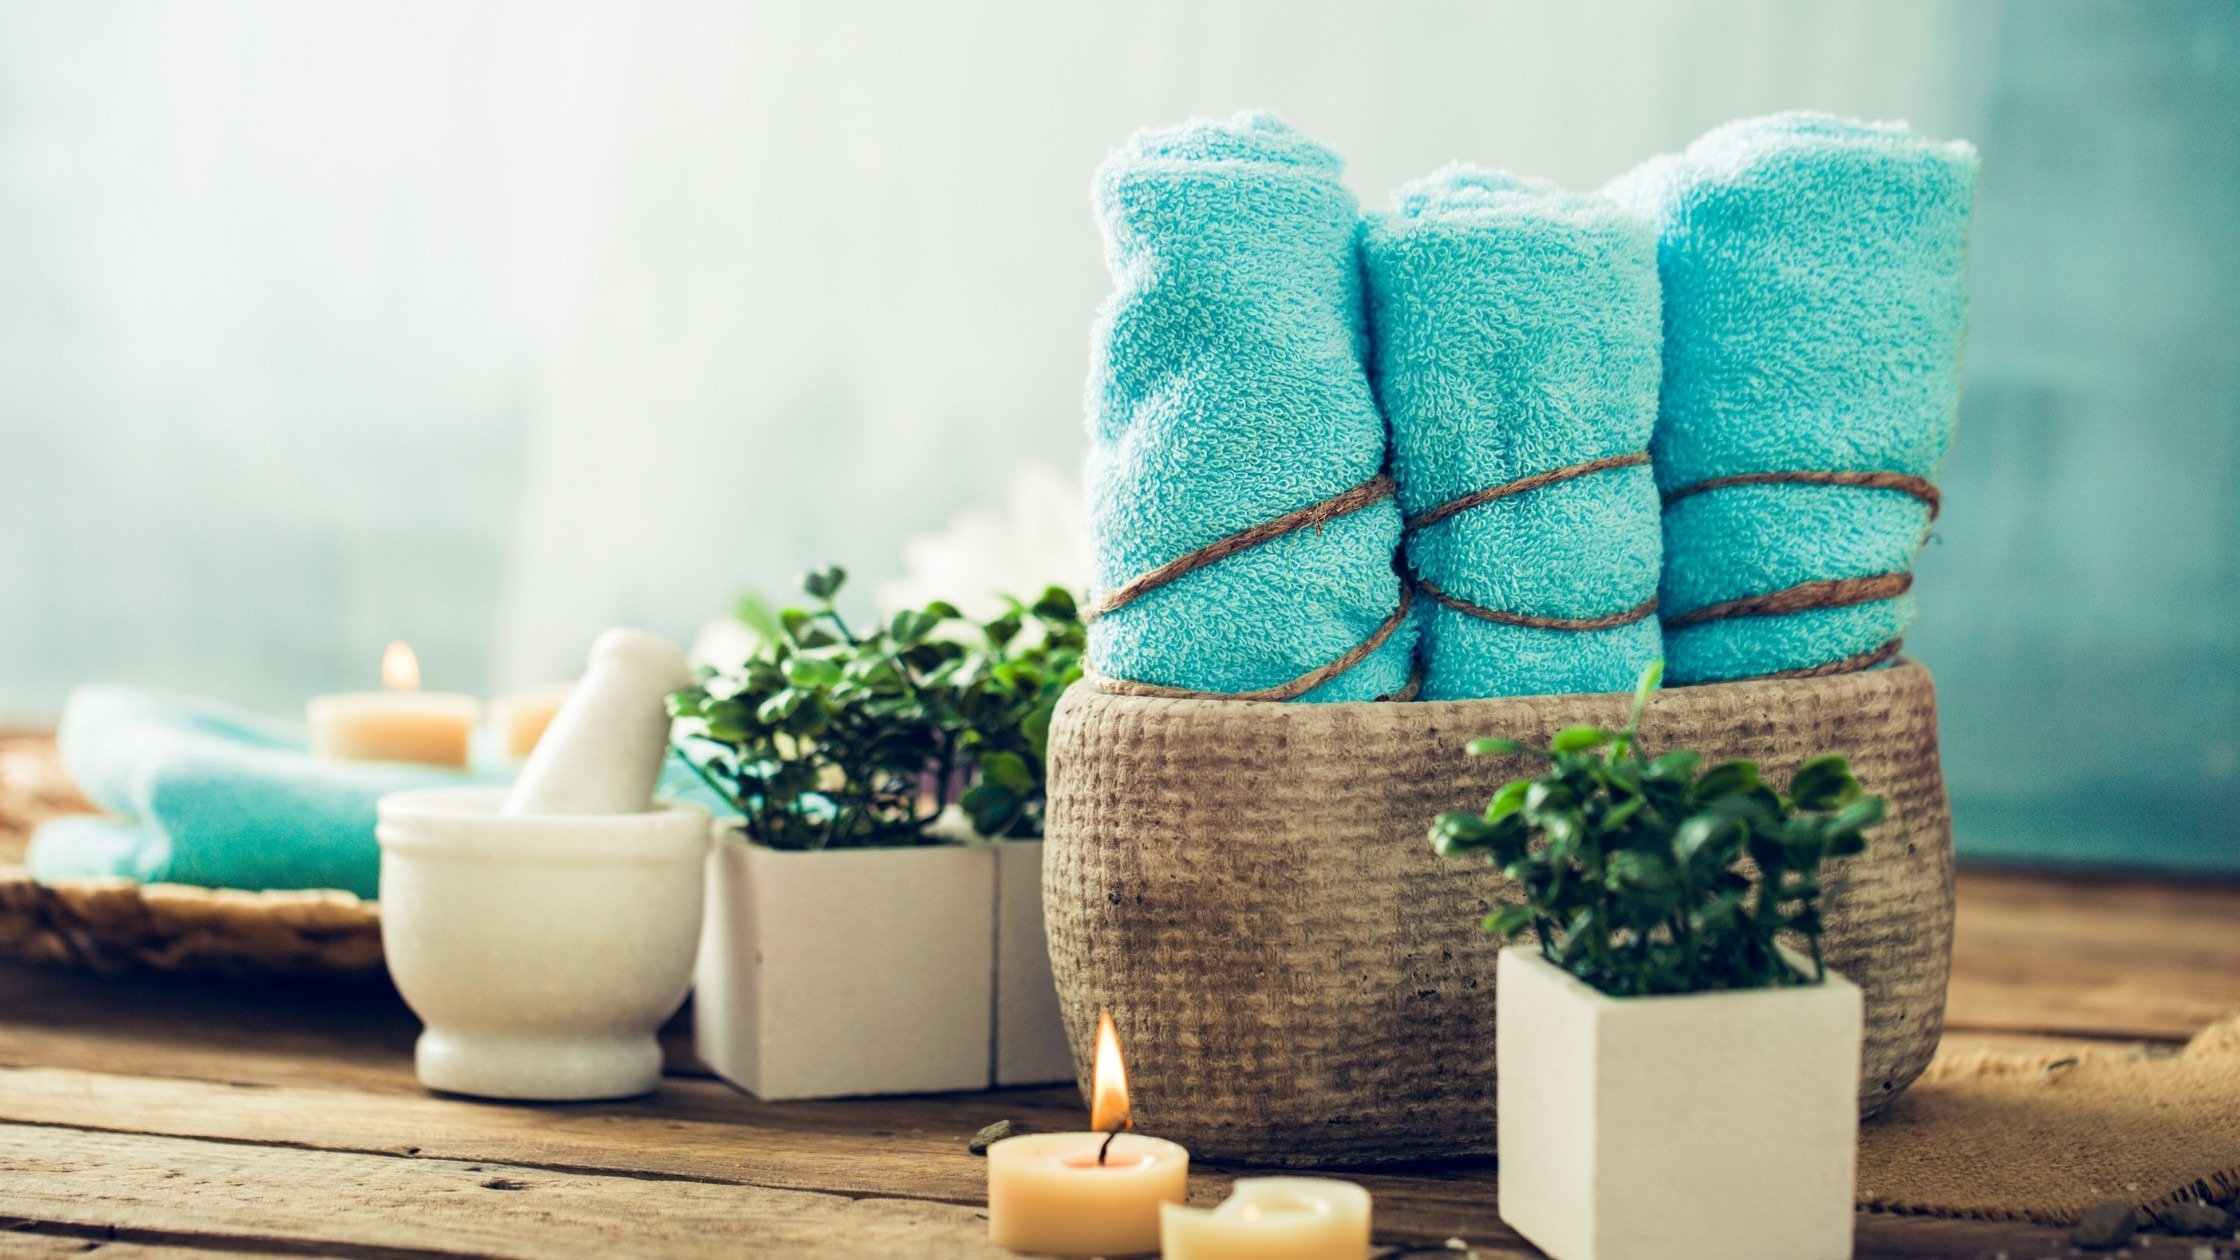 blue bath towels and candles in a bathroom